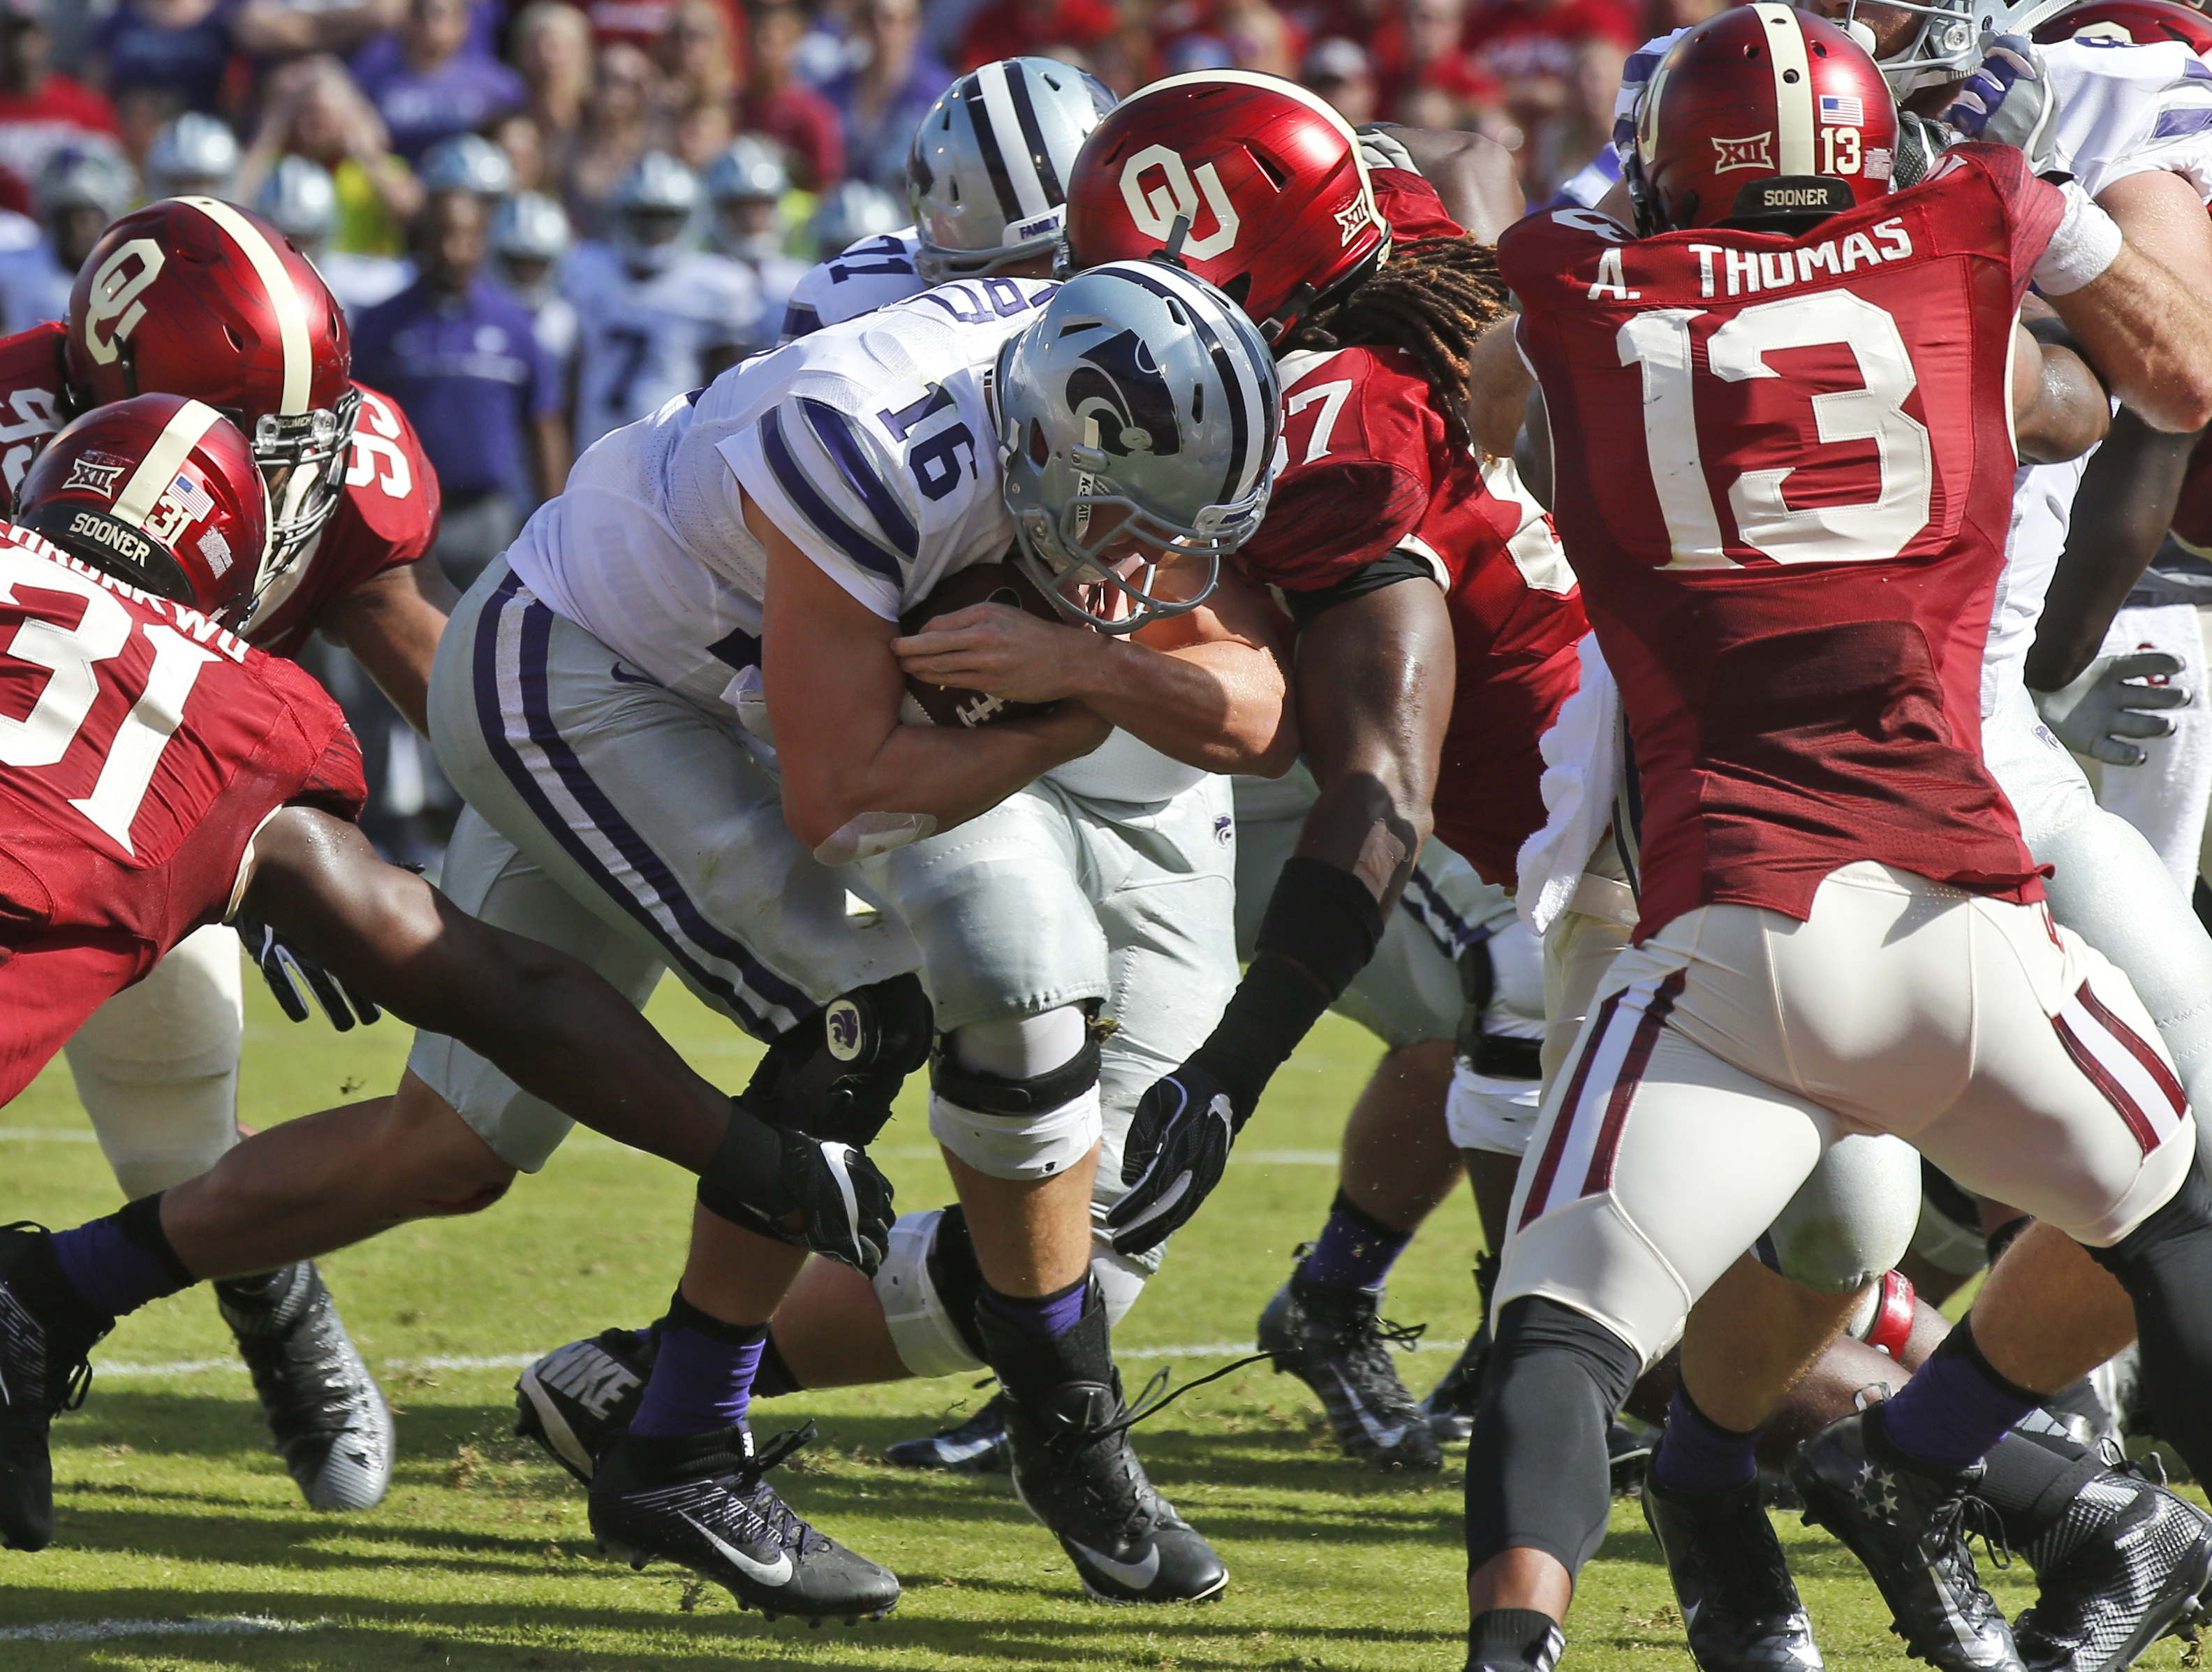 Kansas State quarterback Jesse Ertz (16) pushes through the Oklahoma defense for a touchdown in the second quarter of an NCAA college football game in Norman, Okla., Saturday, Oct. 15, 2016. (AP Photo/Sue Ogrocki)